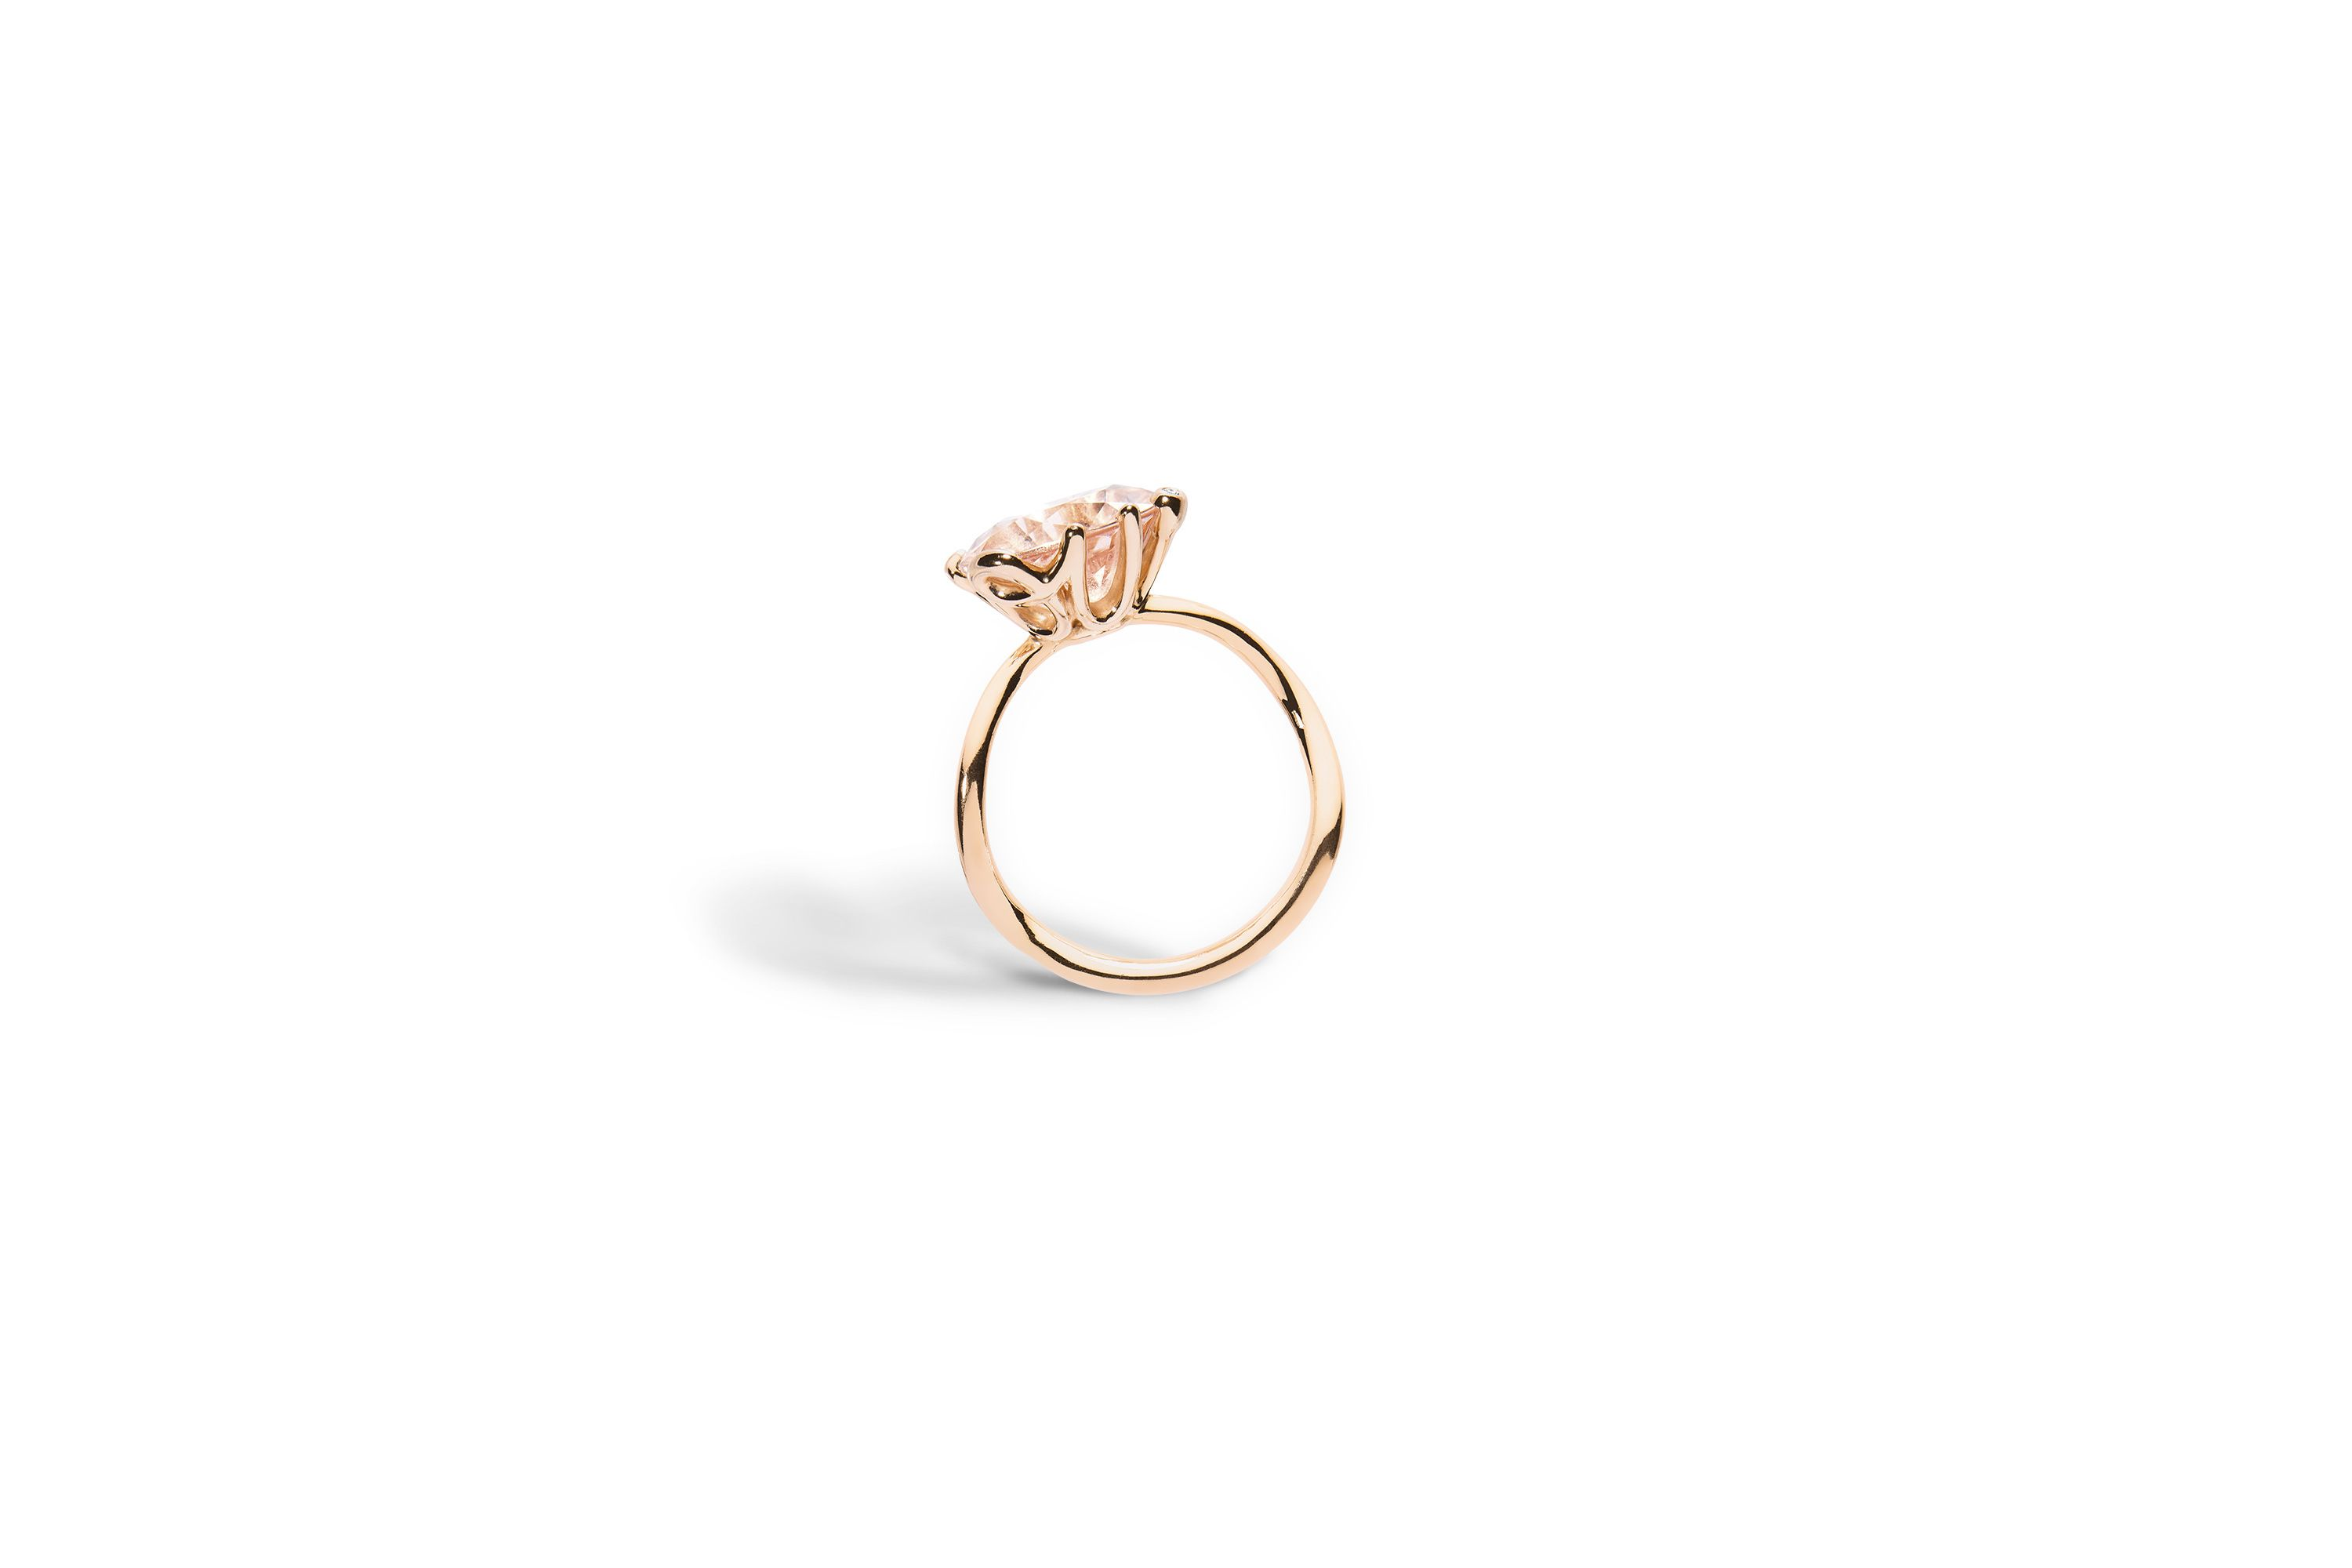 019fc937a55b5d Bague oui, or rose 750 1000e et morganite - Dior   Alliance ...